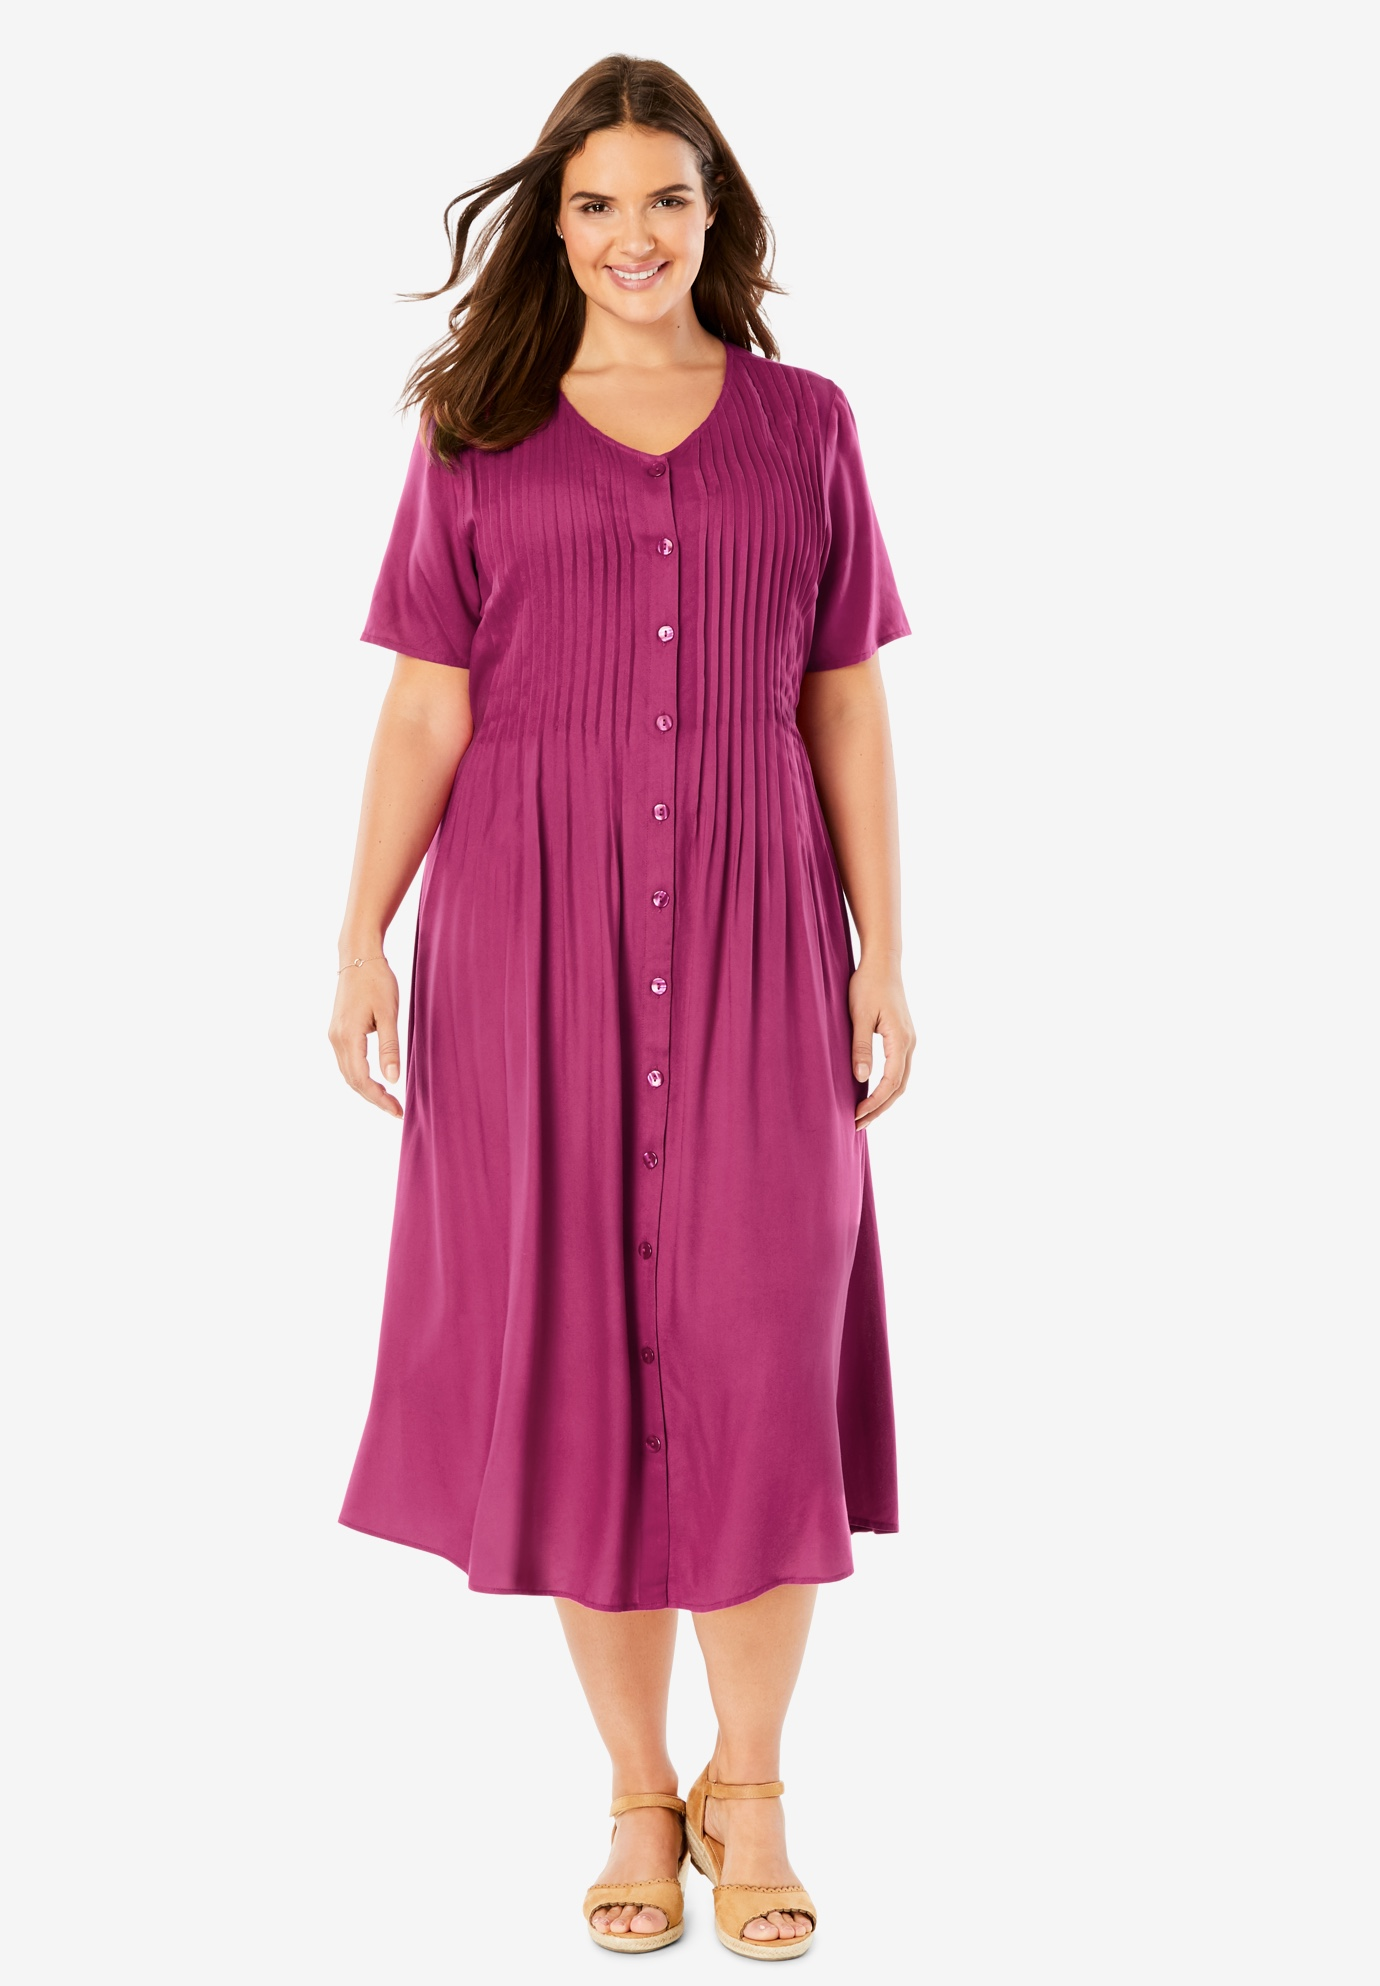 Short-Sleeve Button-Front Dress,